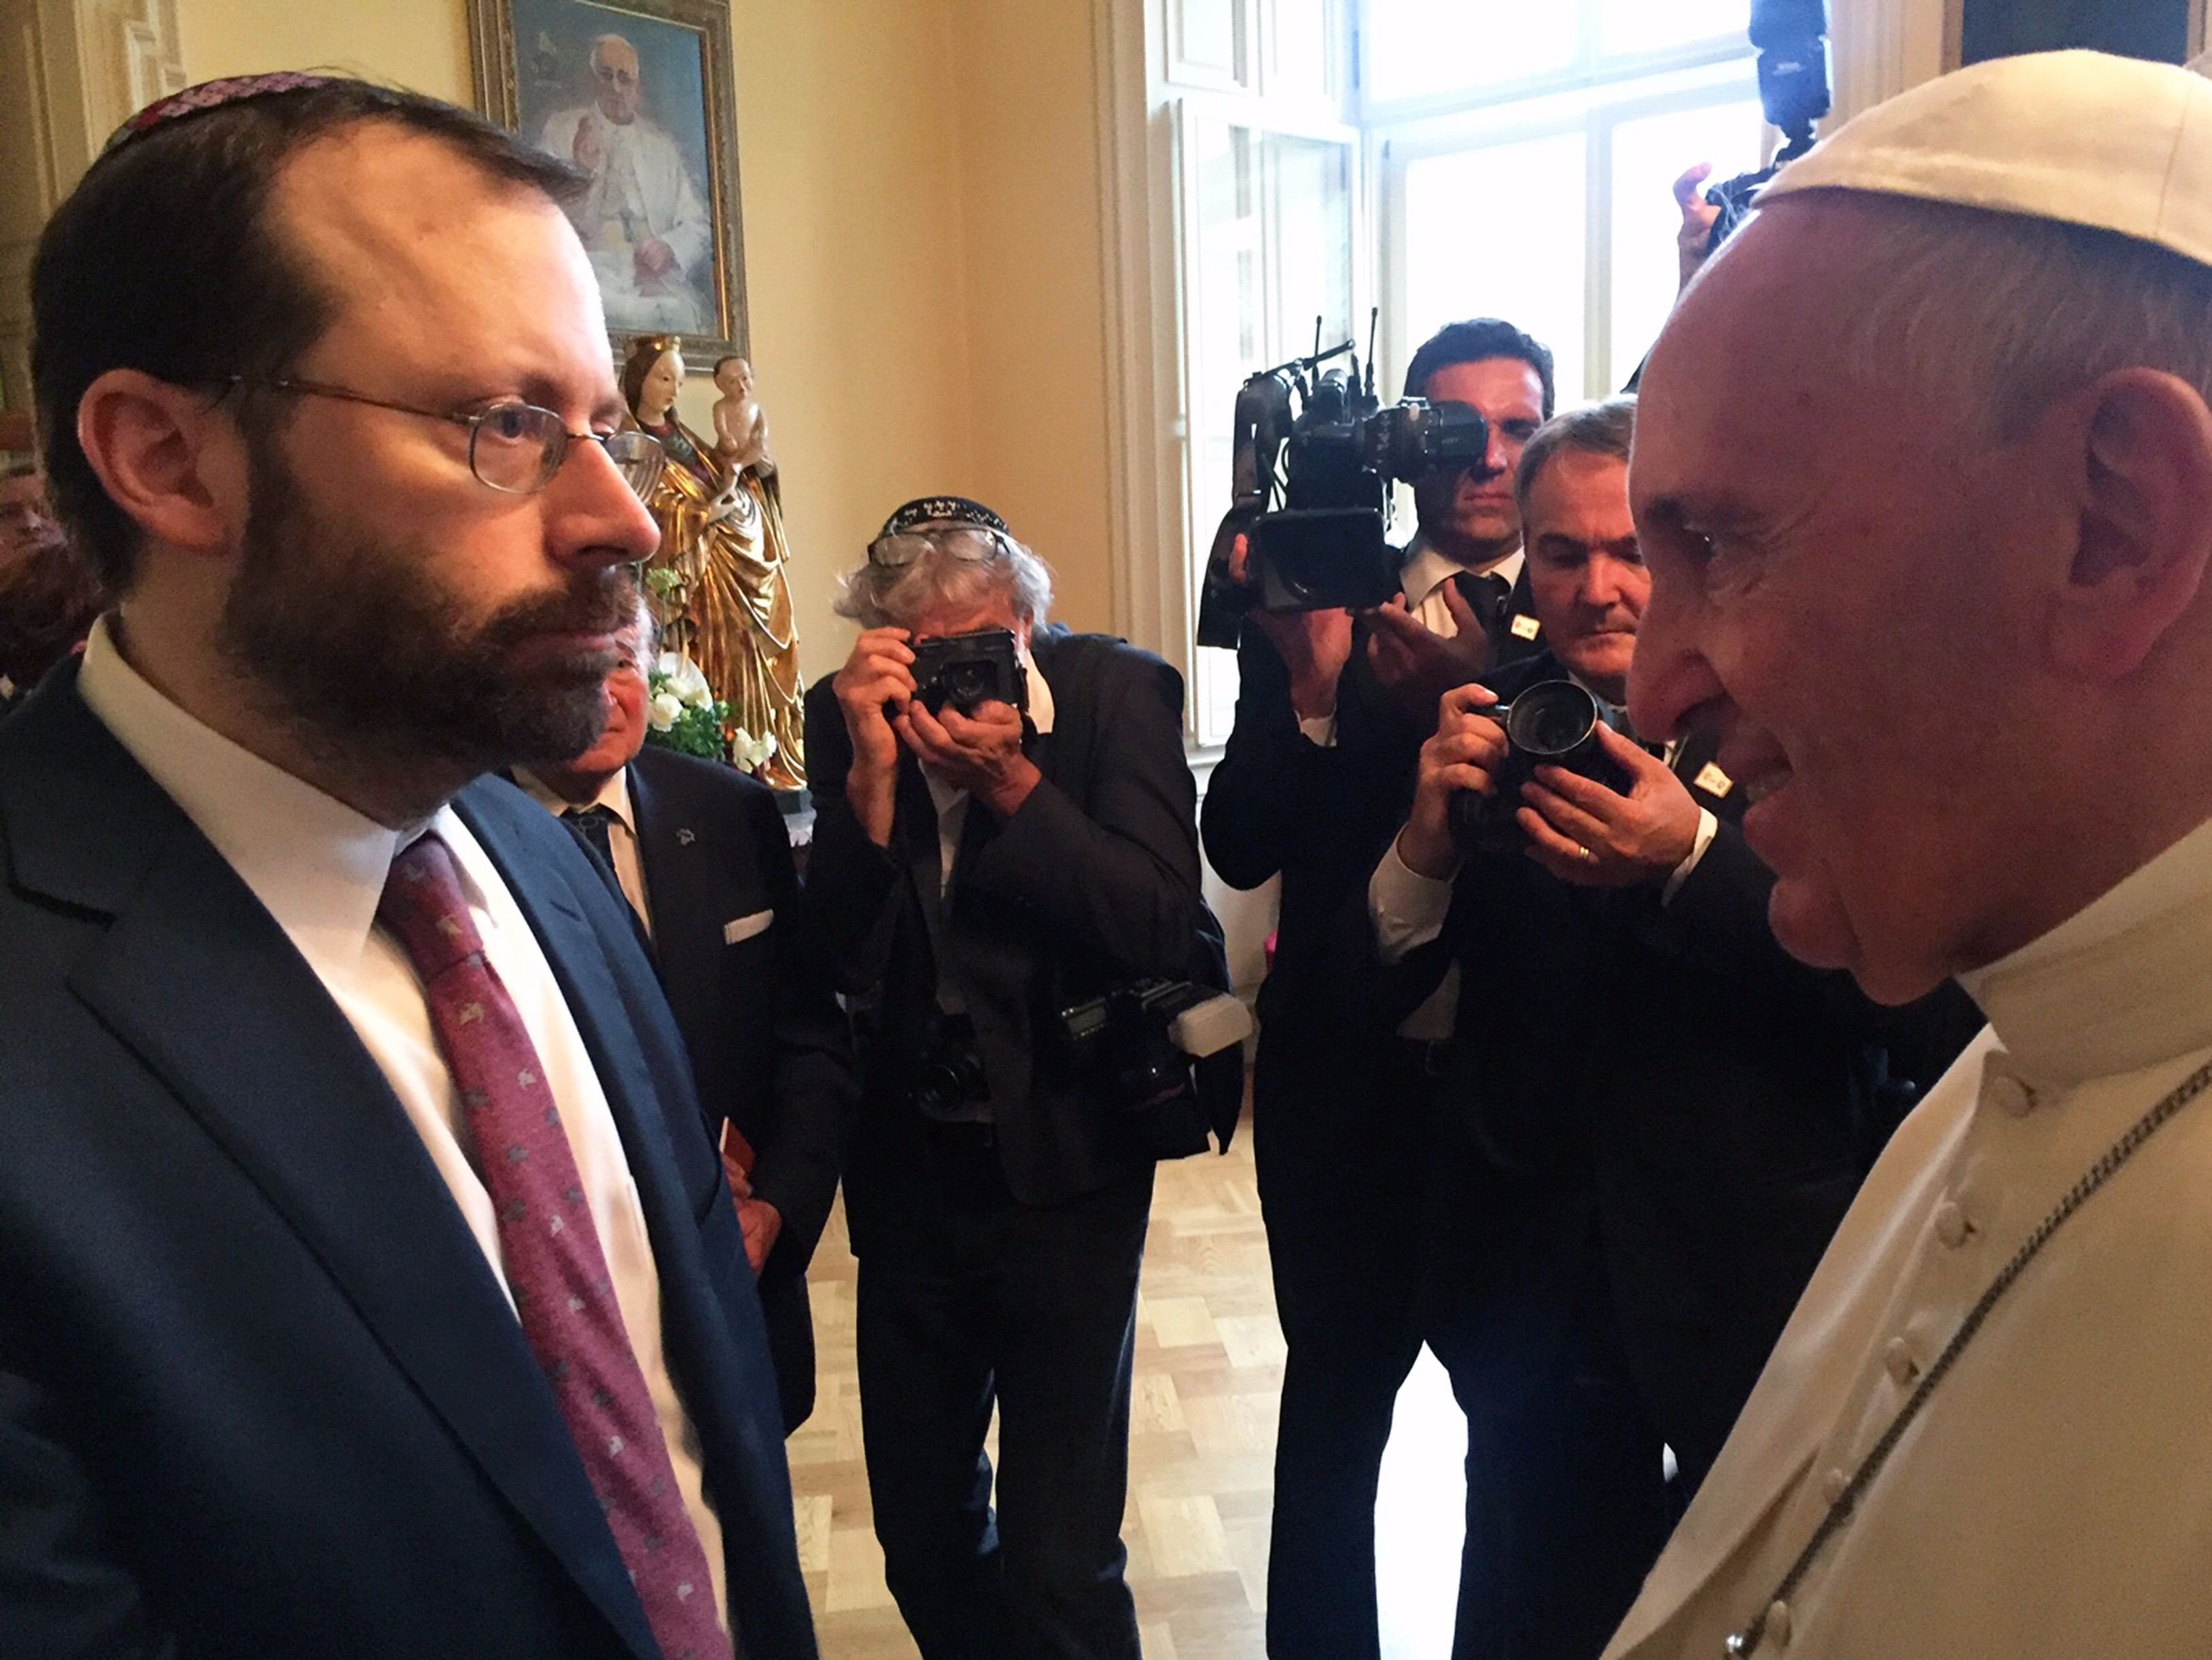 Shavei Israel founder Michael Freund, left, met with Pope Francis in Krakow, Poland on Sunday.